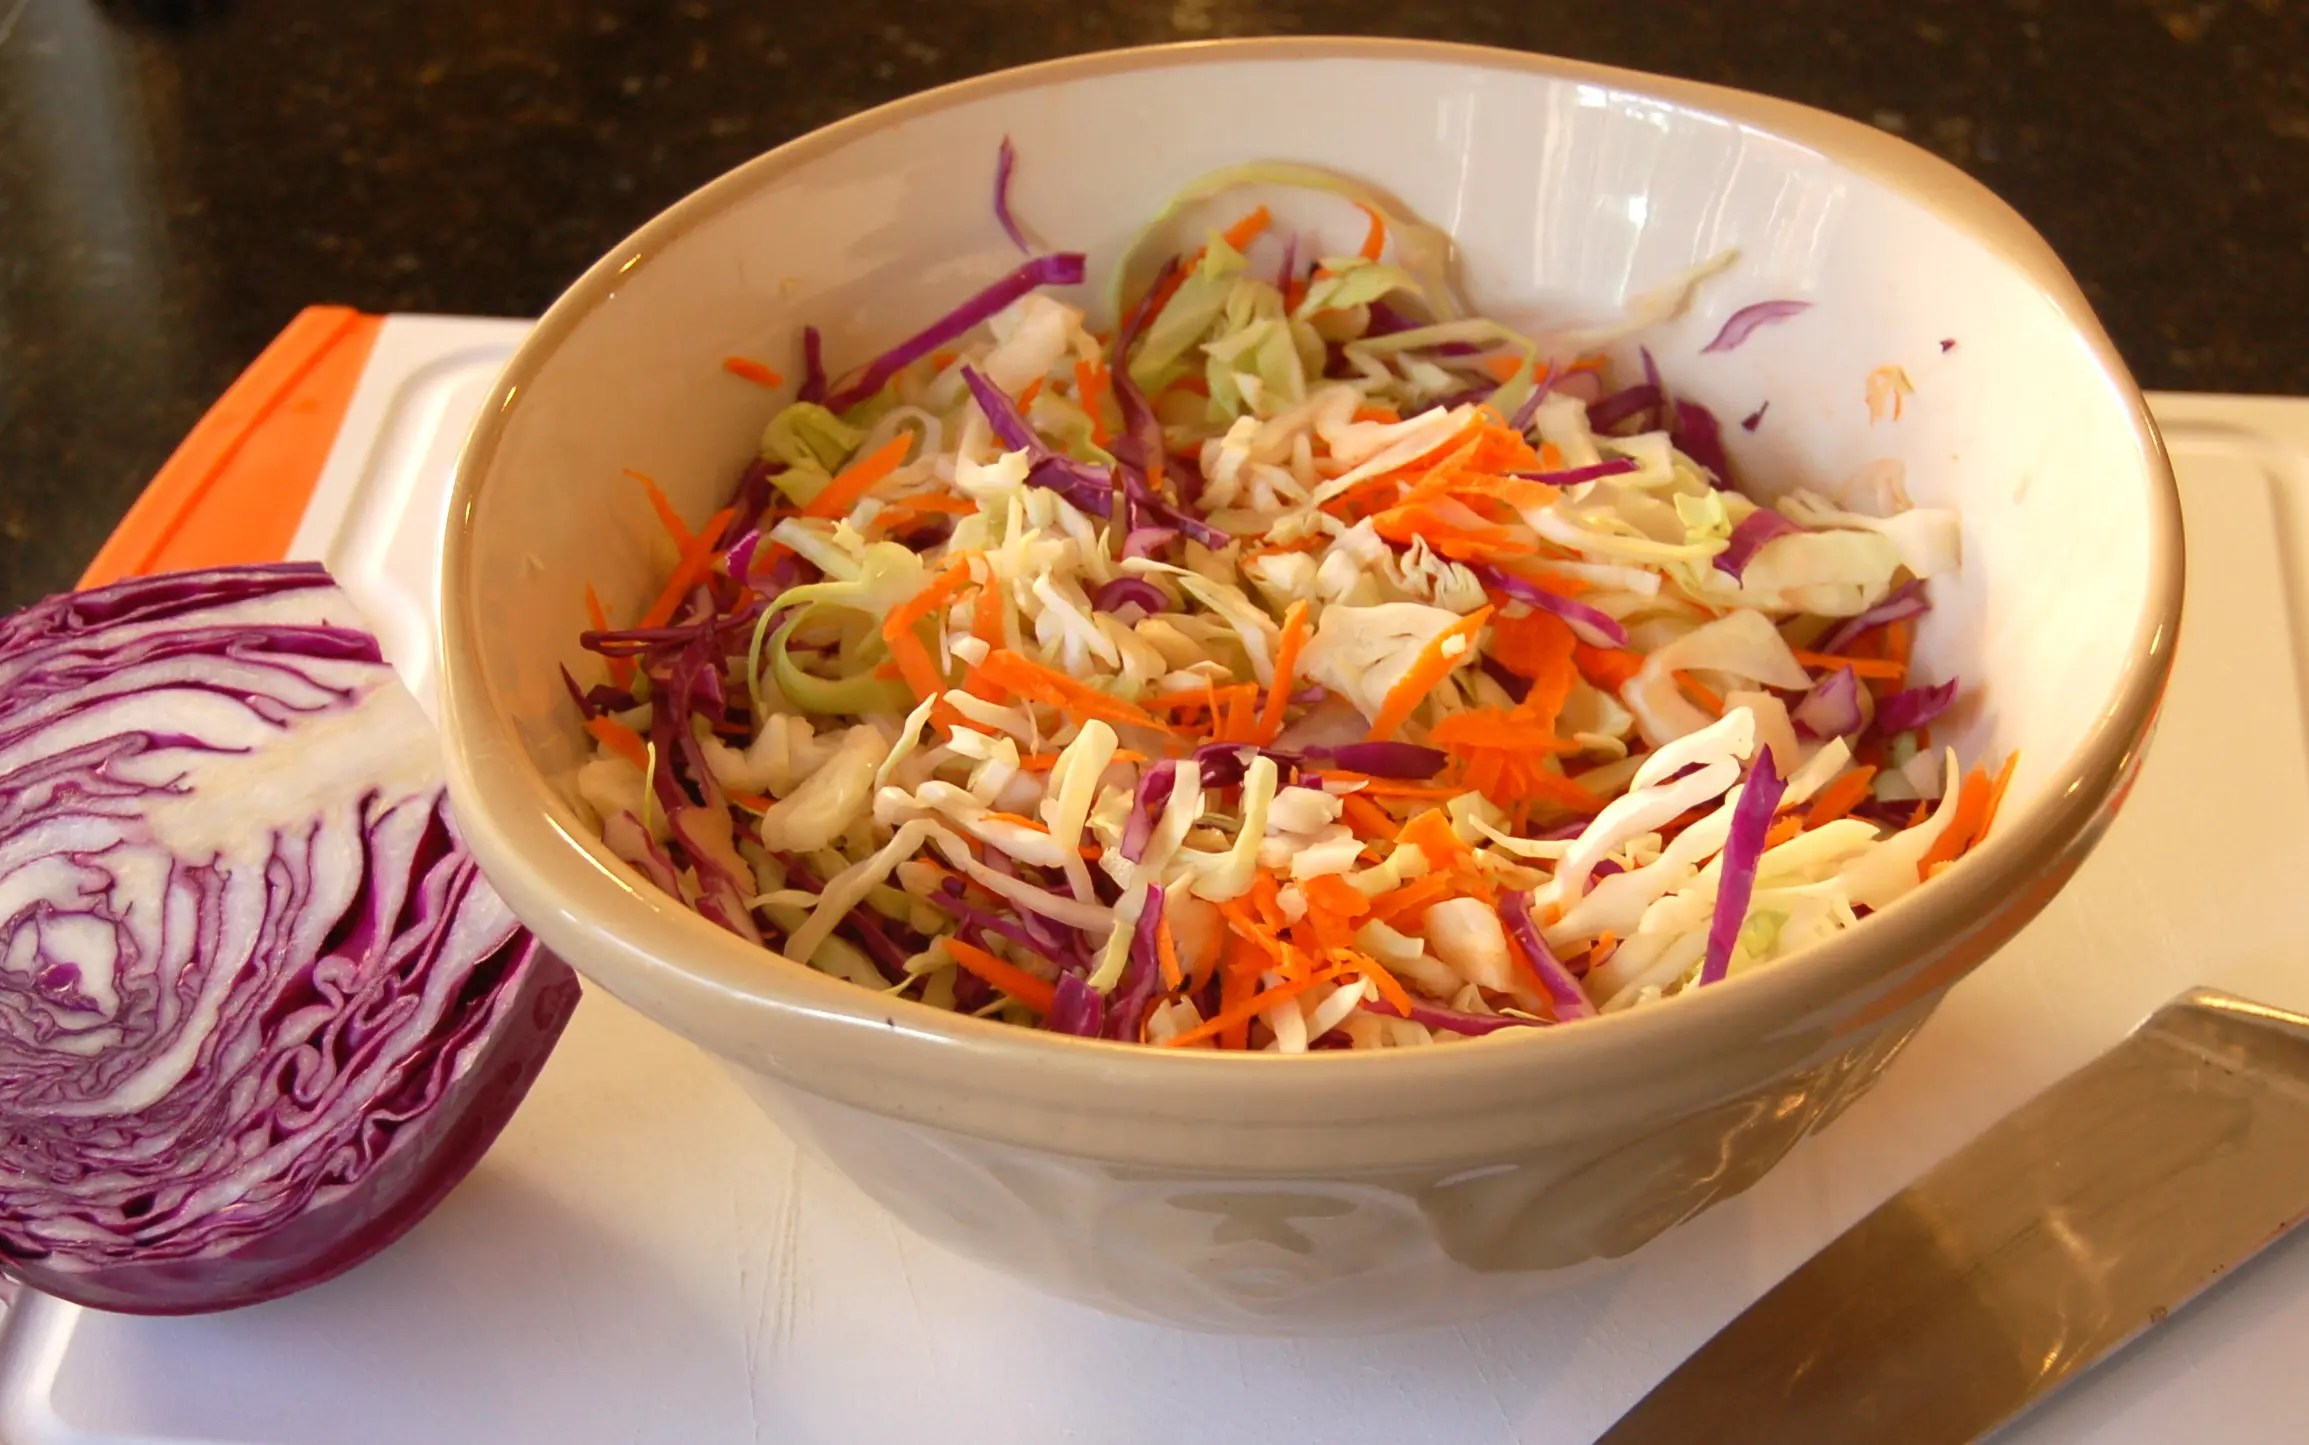 Apr 24,  · Carolina-style slaw is made with a tangy vinegar dressing, a tasty alternative to coleslaw with mayonnaise dressing. The sweet and tangy dressing is cooked with seasonings and then poured over the shredded and chopped vegetables.4/4().